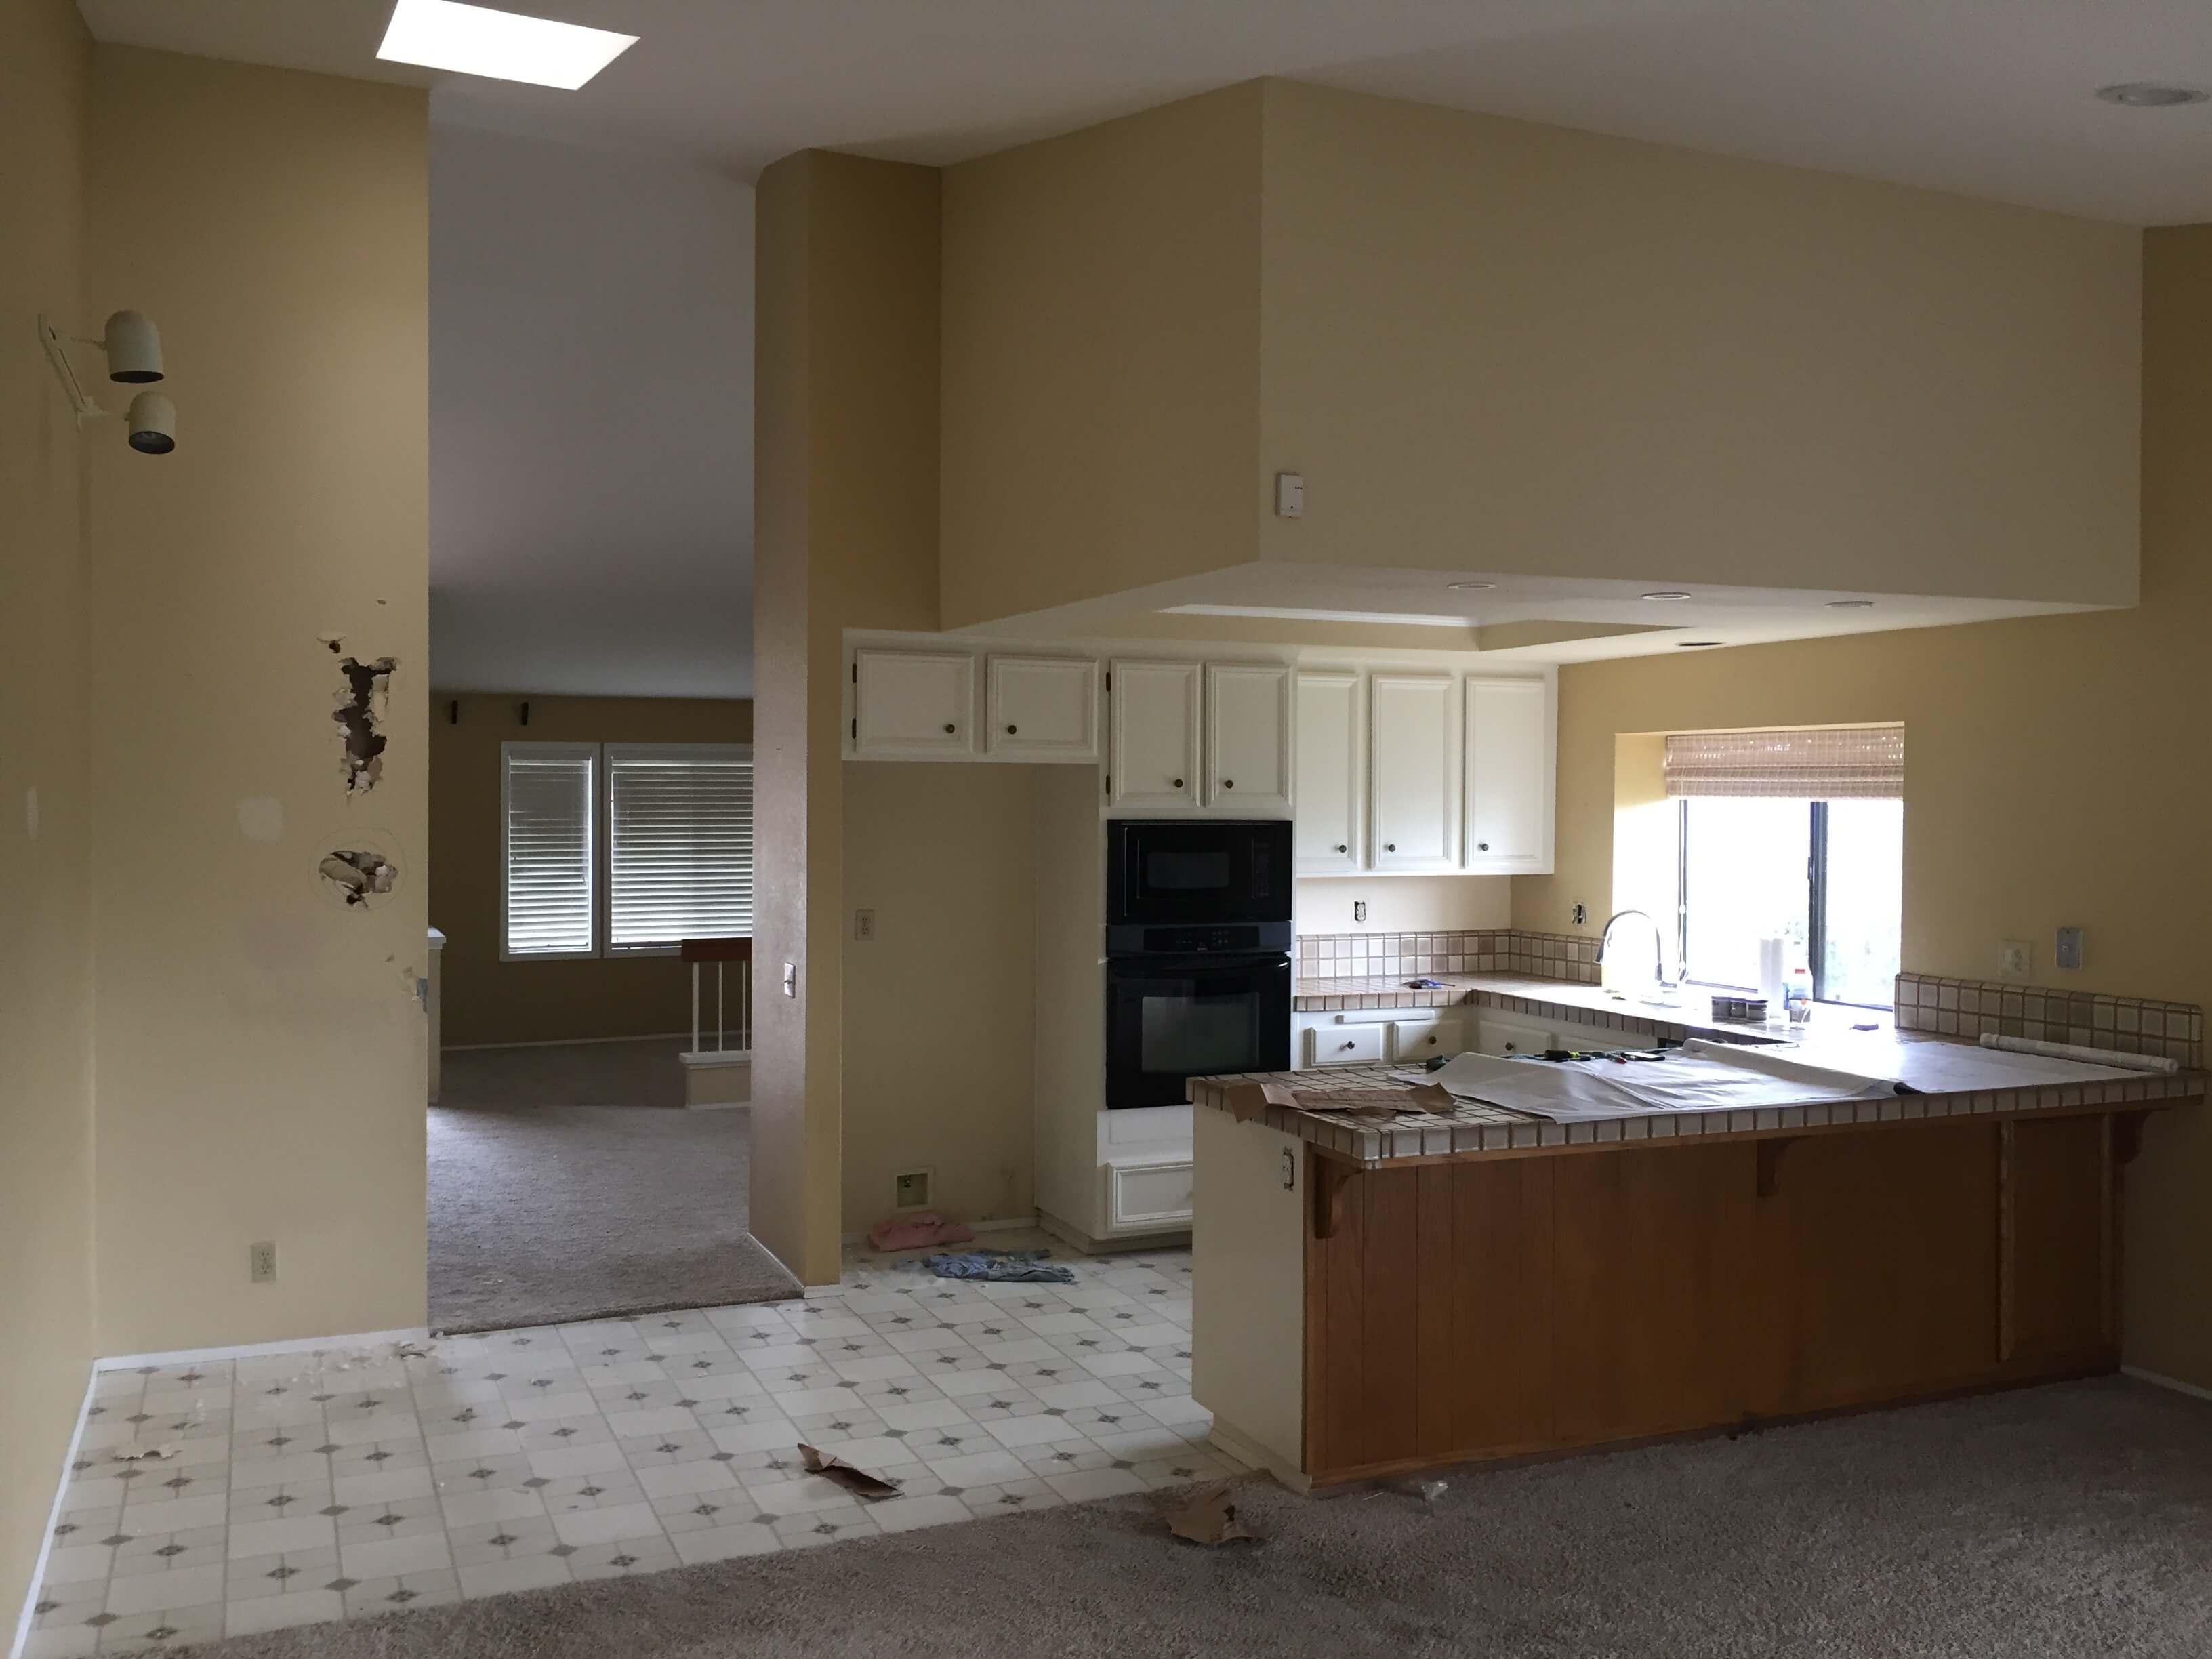 image of 80s house before whole home remodel